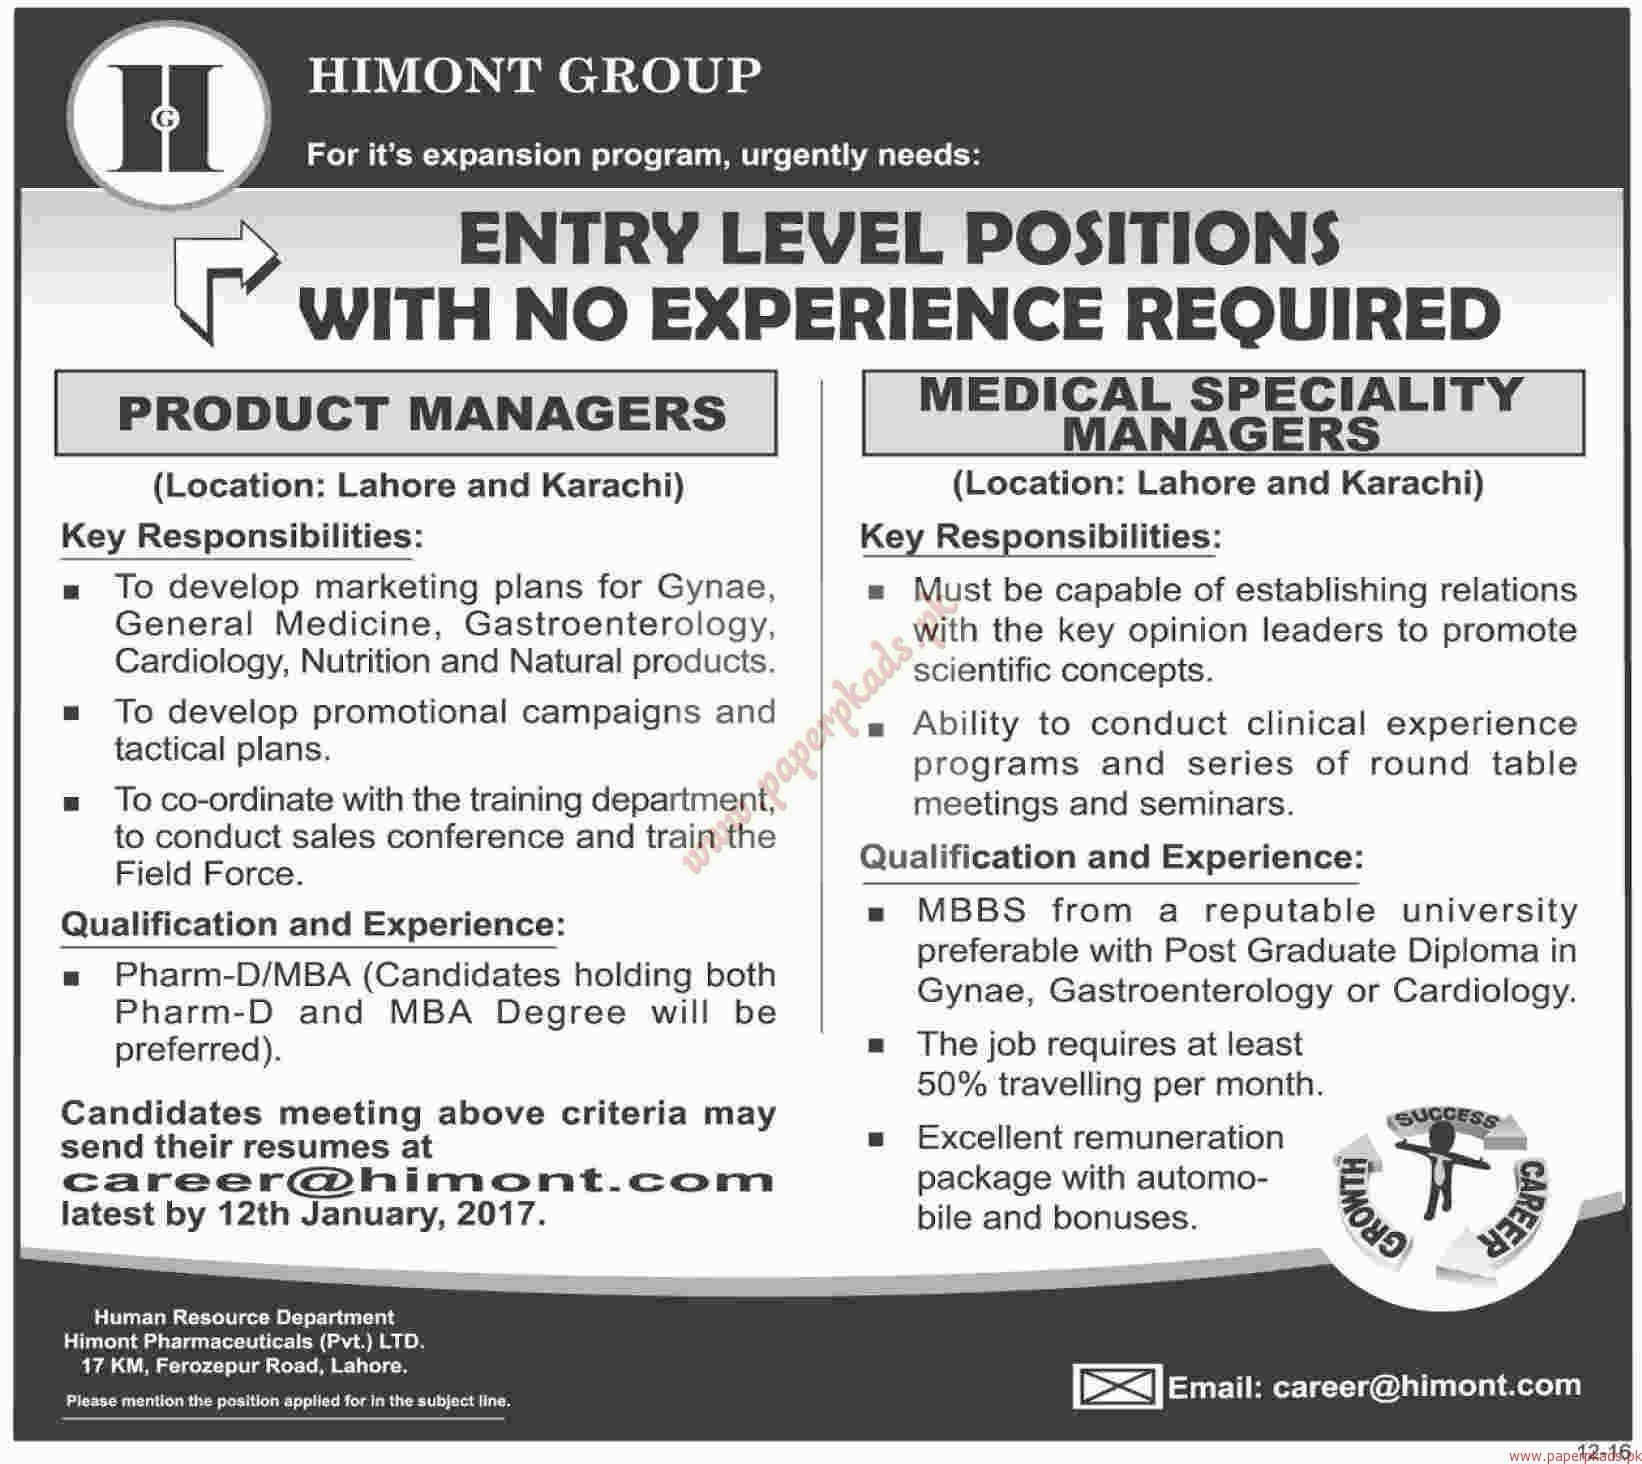 HIMONT Group Jobs - Dawn Jobs ads 01 January 2017